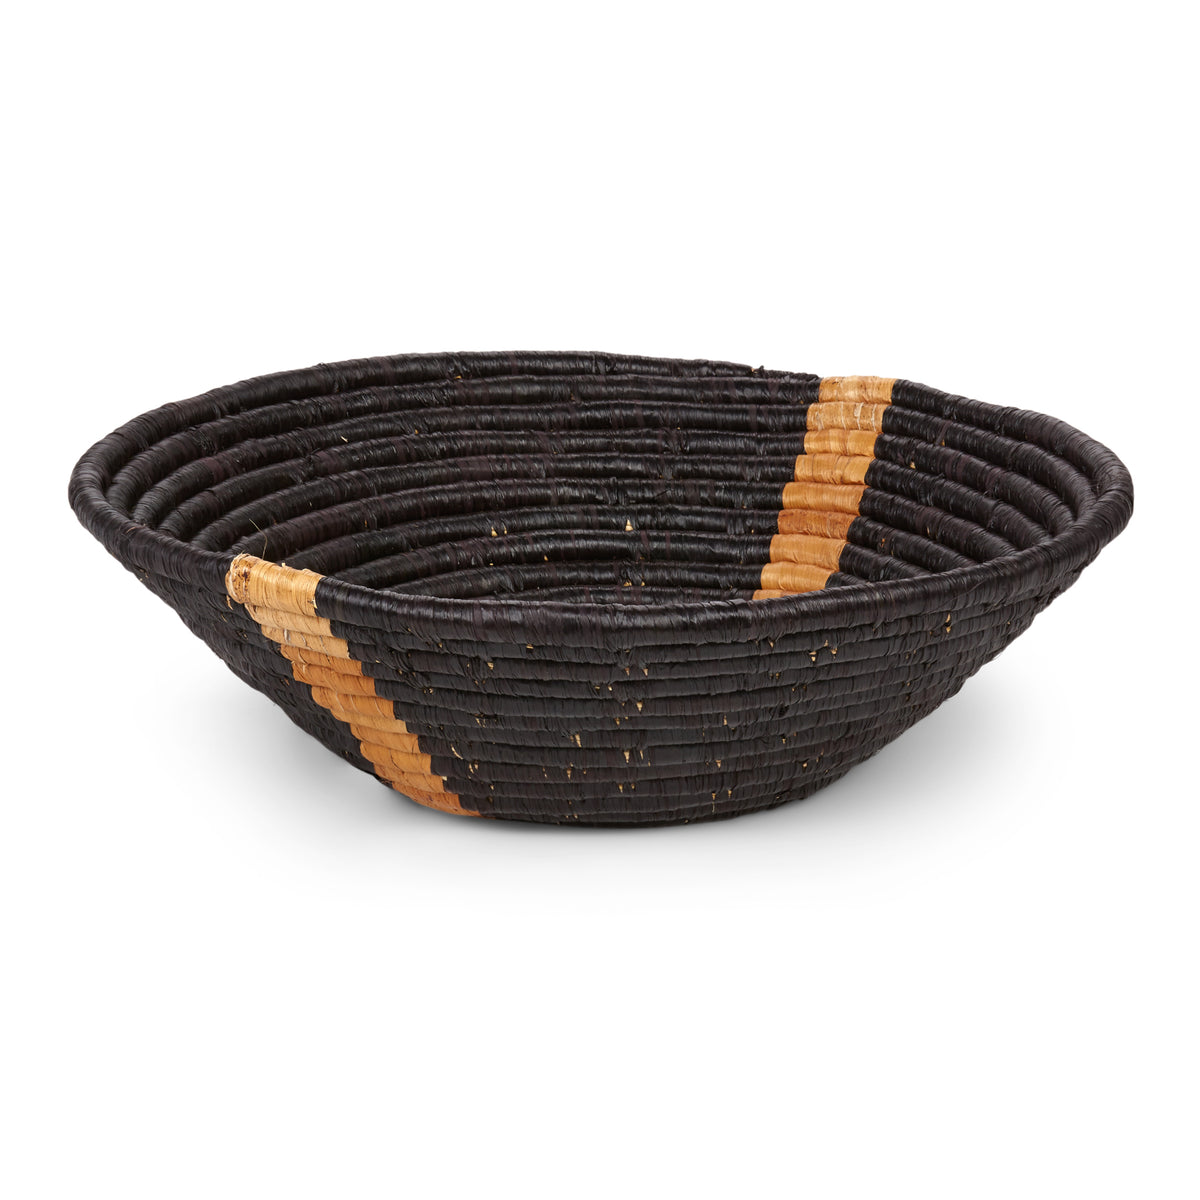 Banana Bark Basket